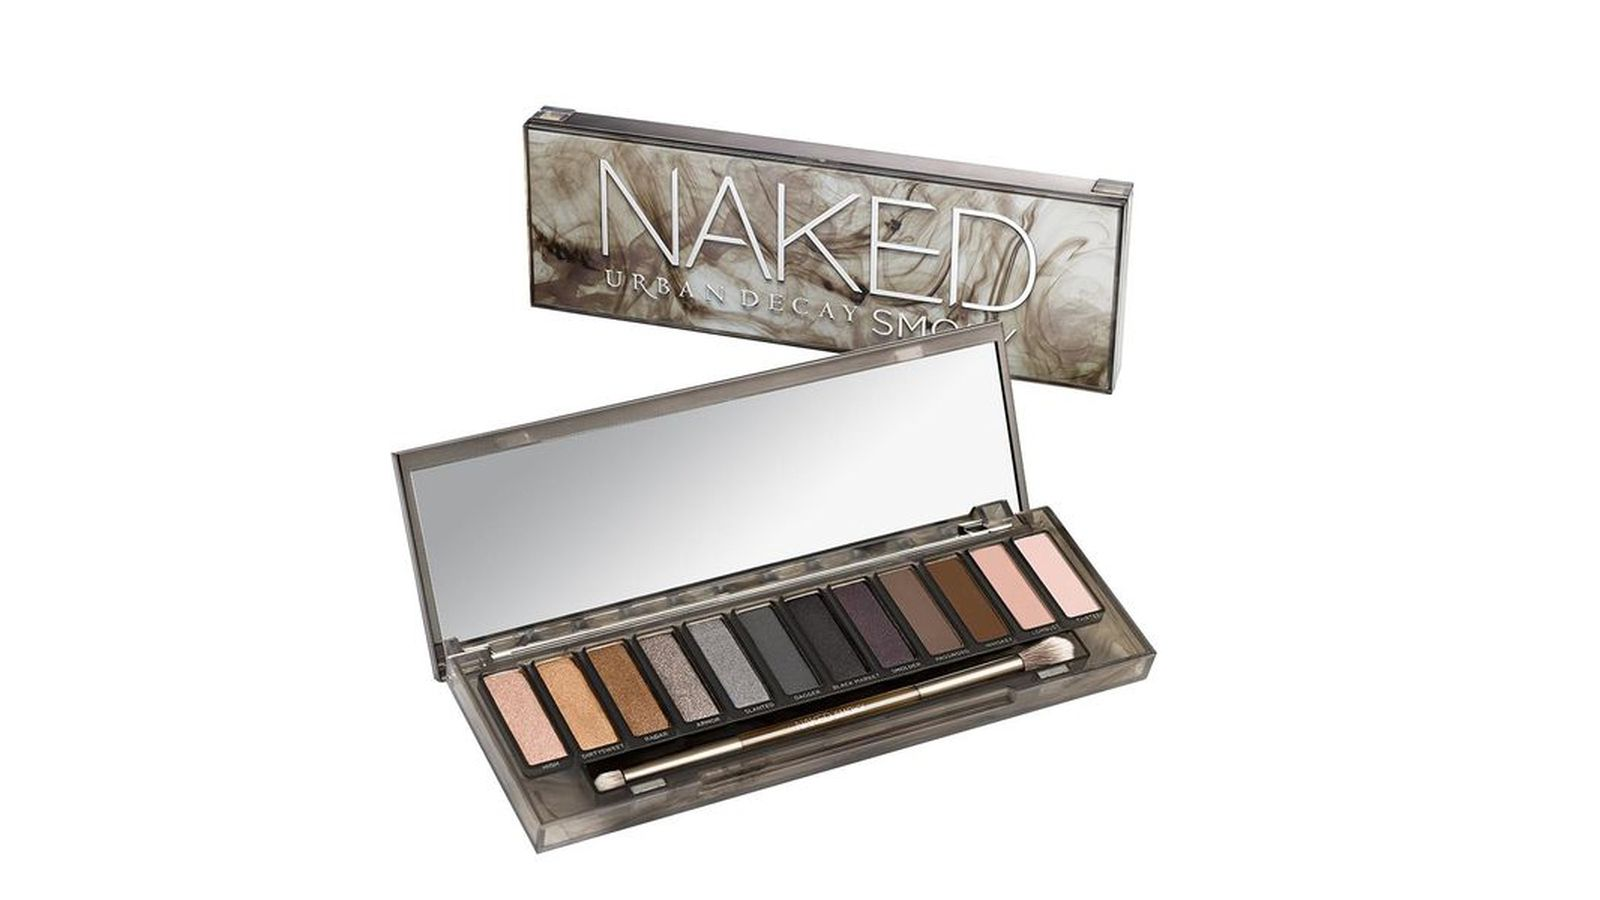 Get Urban Decay's Naked Smoky Palette for 50% Off